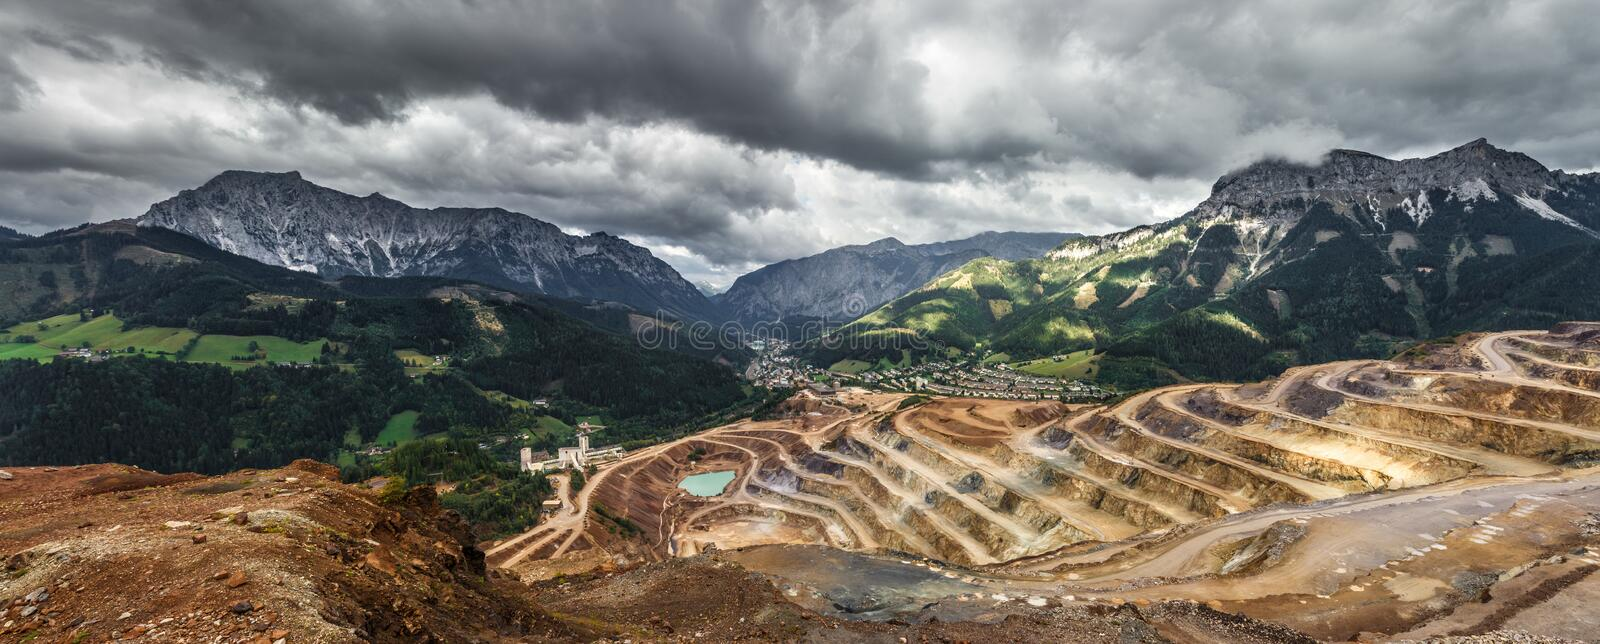 Brown Rice Terraces Under Gray White Sky during Daytime royalty free stock images